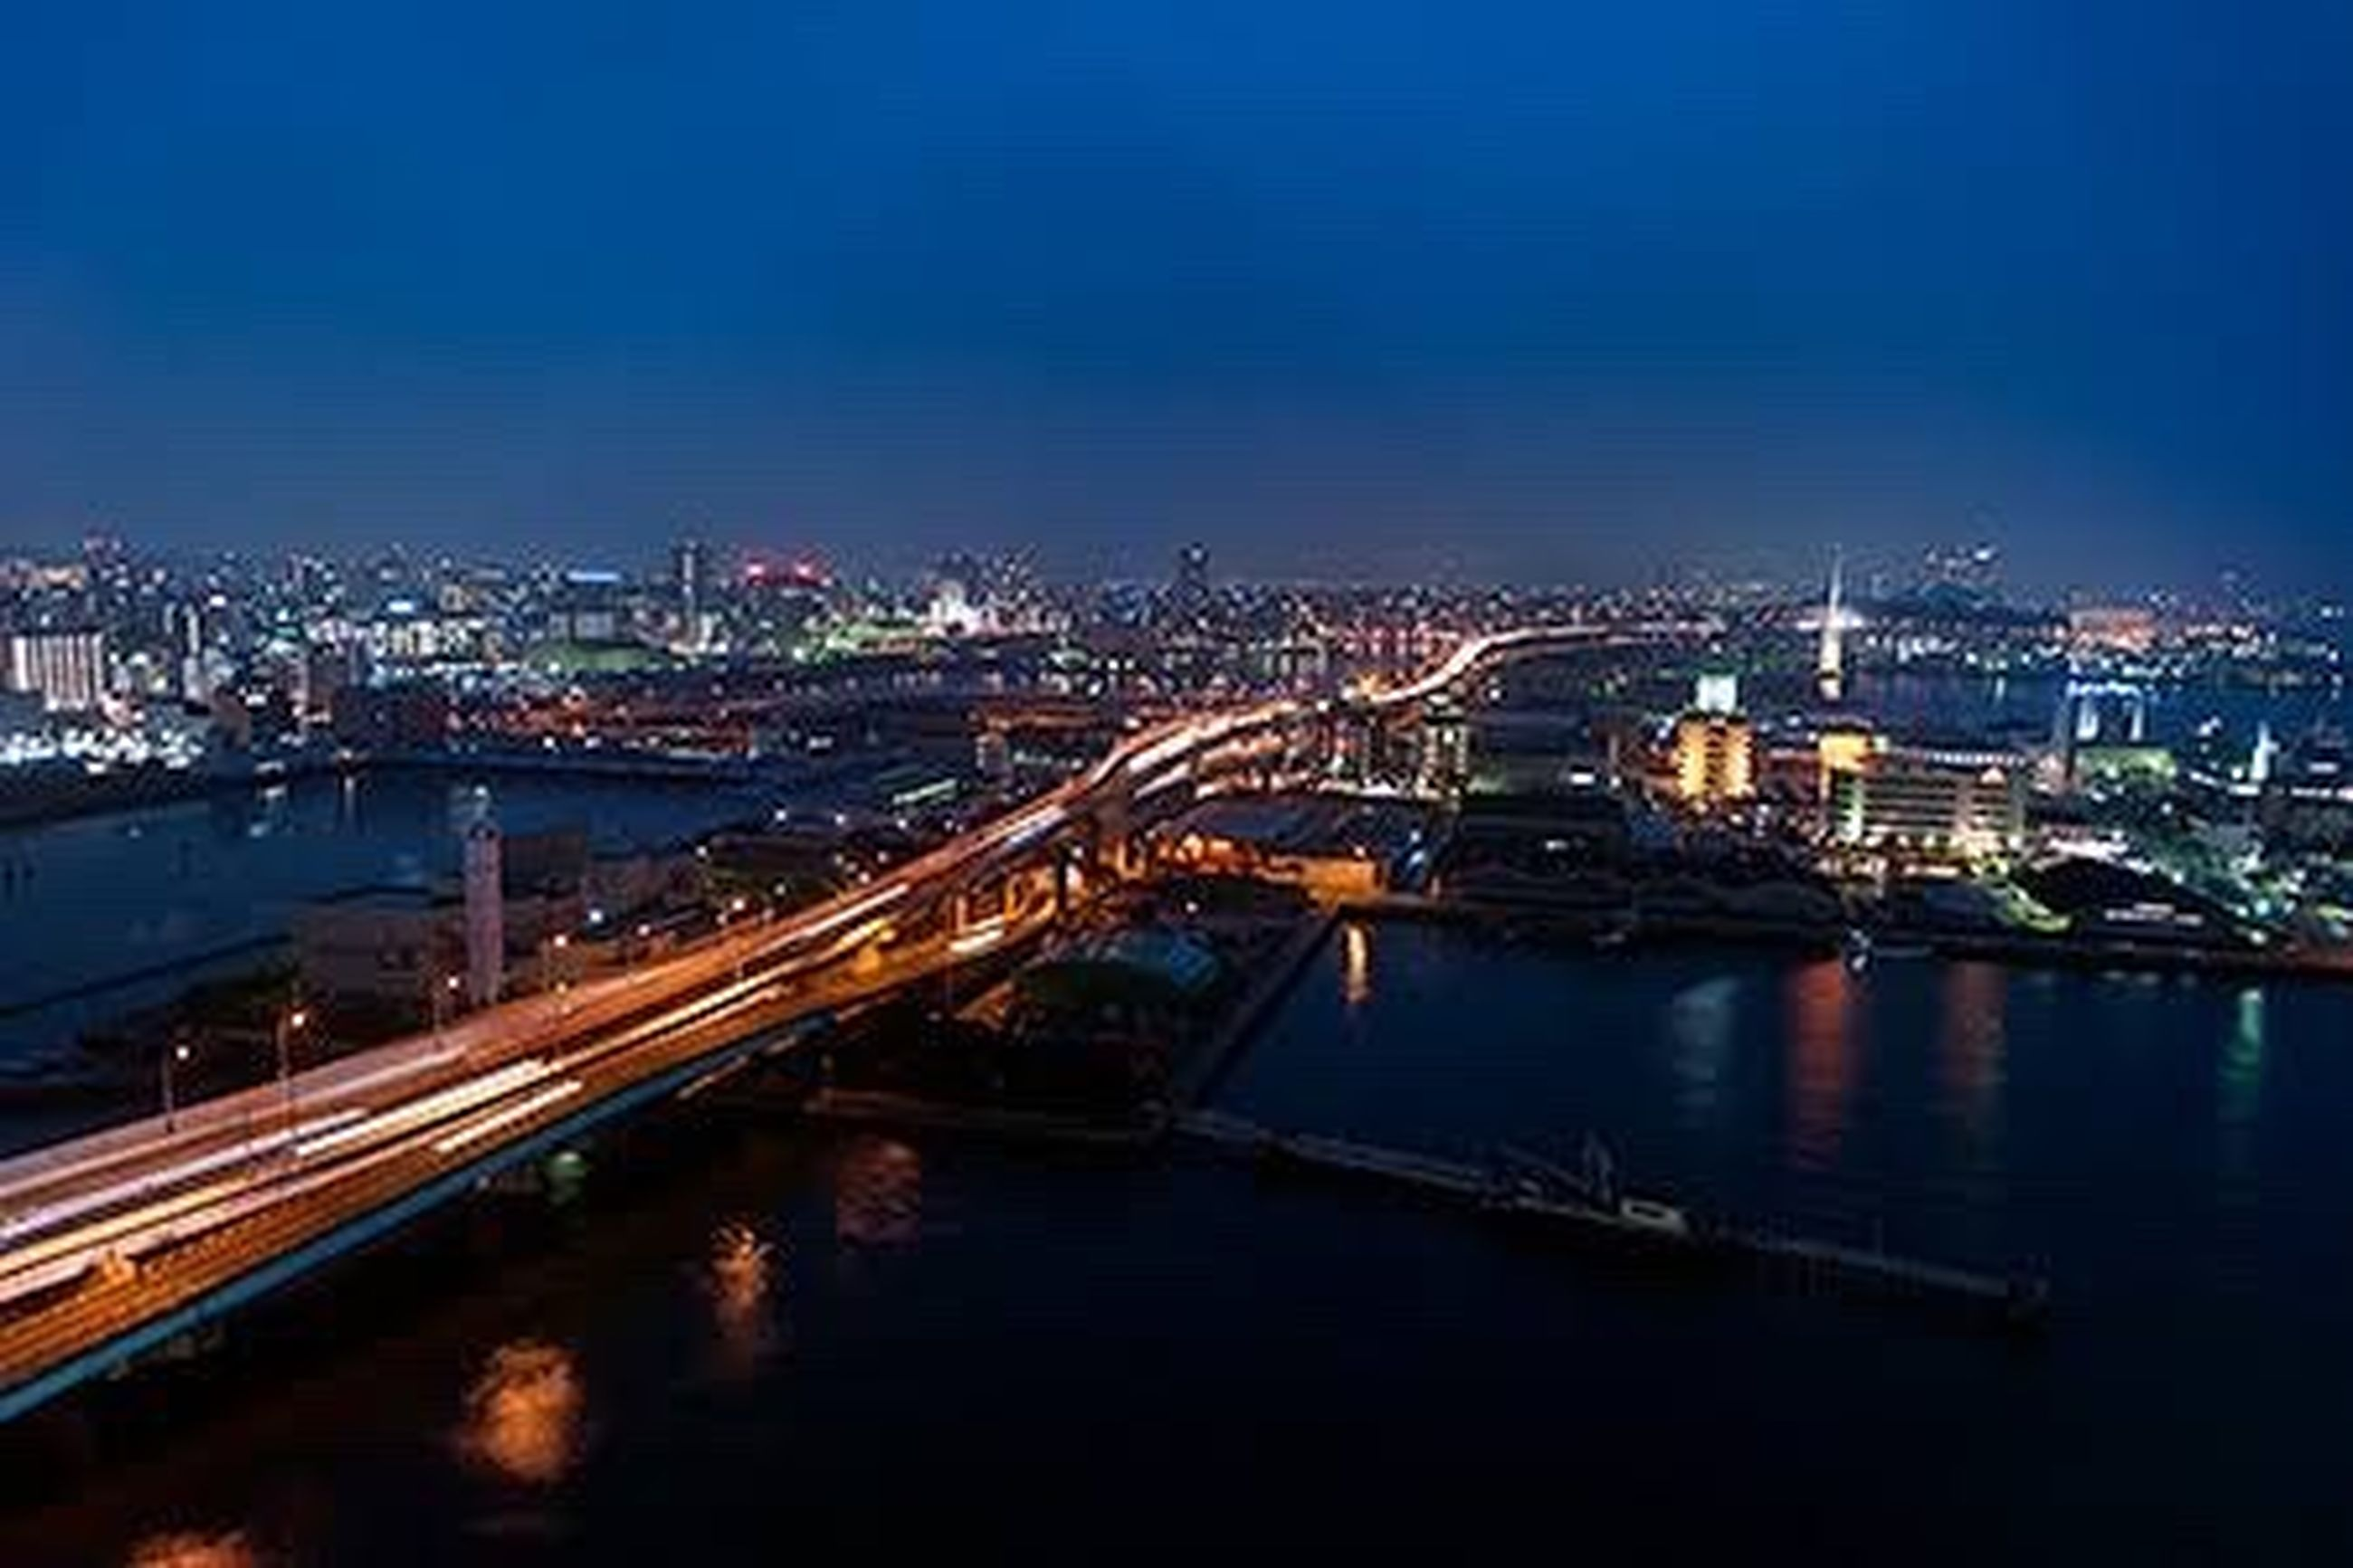 architecture, illuminated, built structure, building exterior, city, connection, night, transportation, bridge - man made structure, river, cityscape, high angle view, clear sky, water, copy space, bridge, blue, sky, engineering, city life